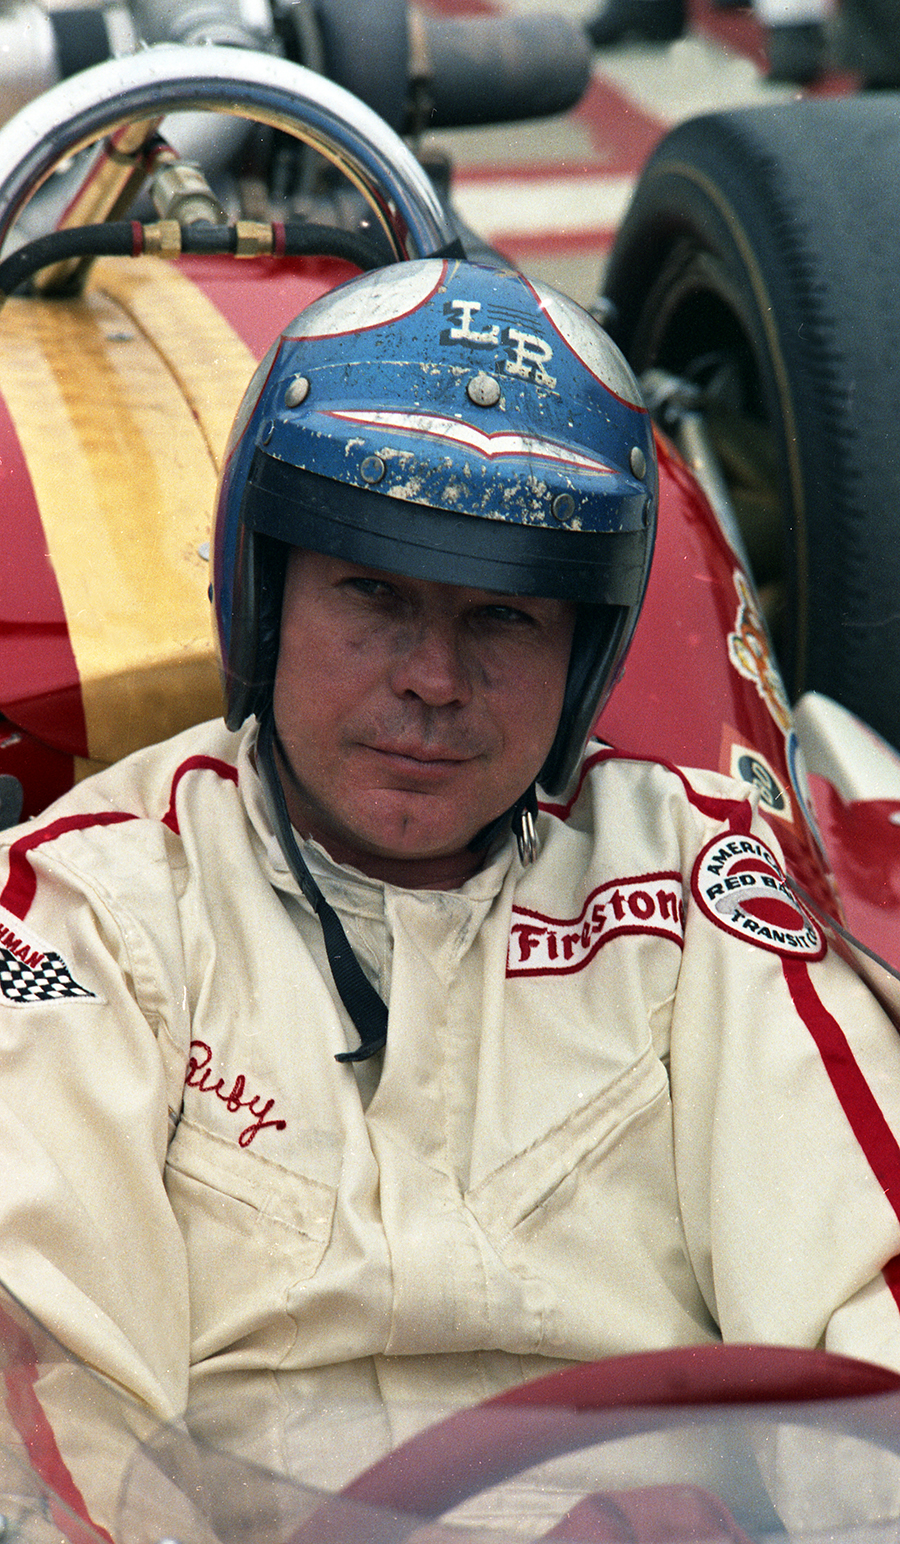 500 miles_Ruby - Indianapolis Motor Speedway Museum